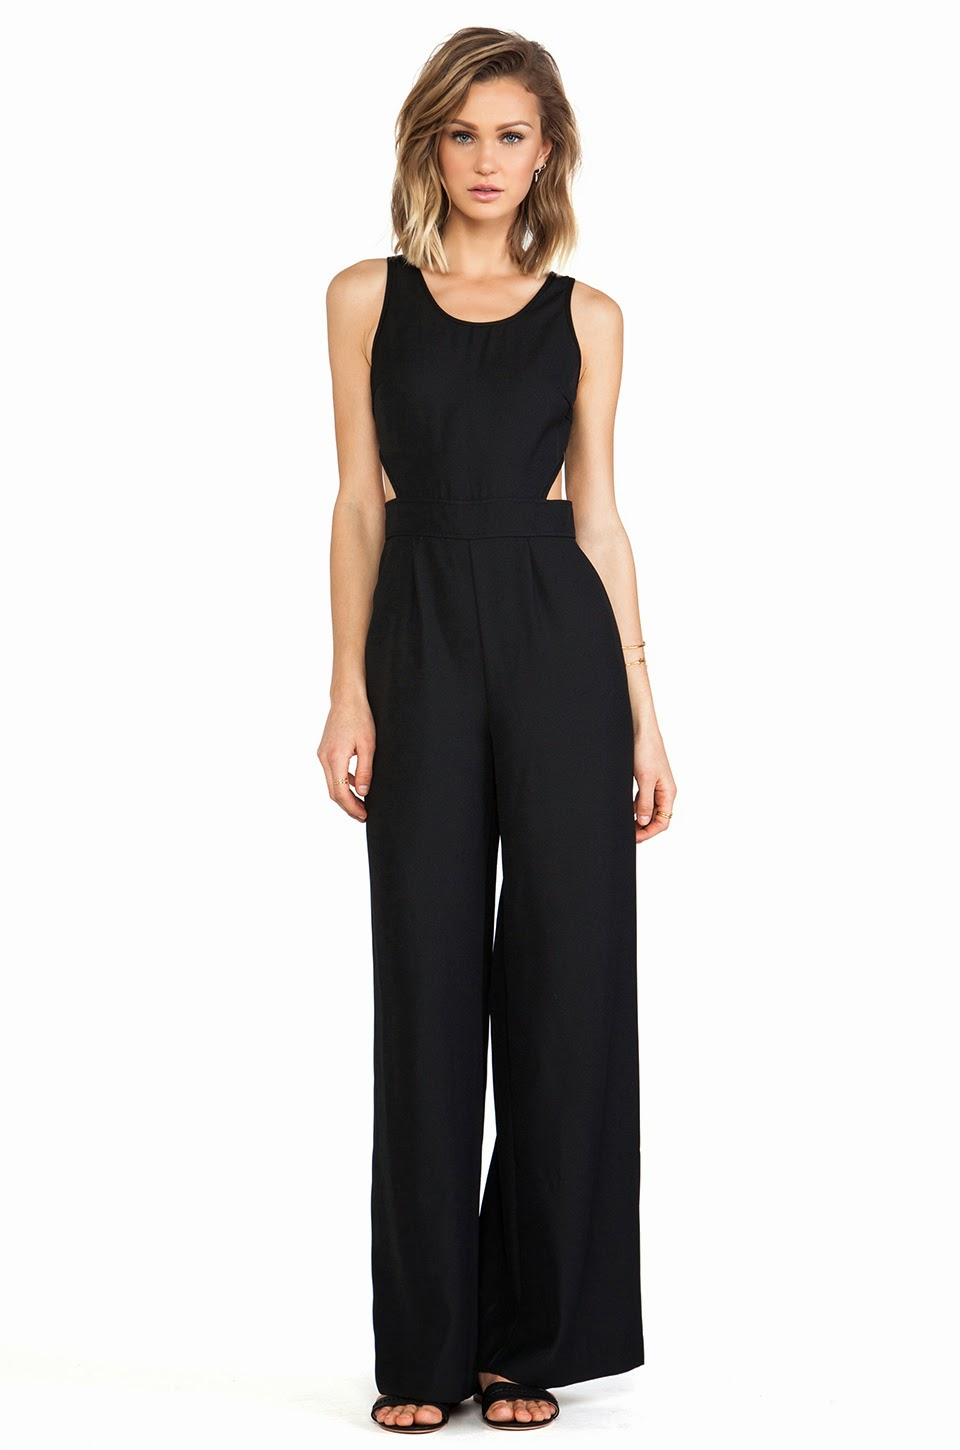 http://www.sheinside.com/Black-Sleeveless-Midriff-Loose-Jumpsuit-p-171641-cat-1860.html?aff_id=461